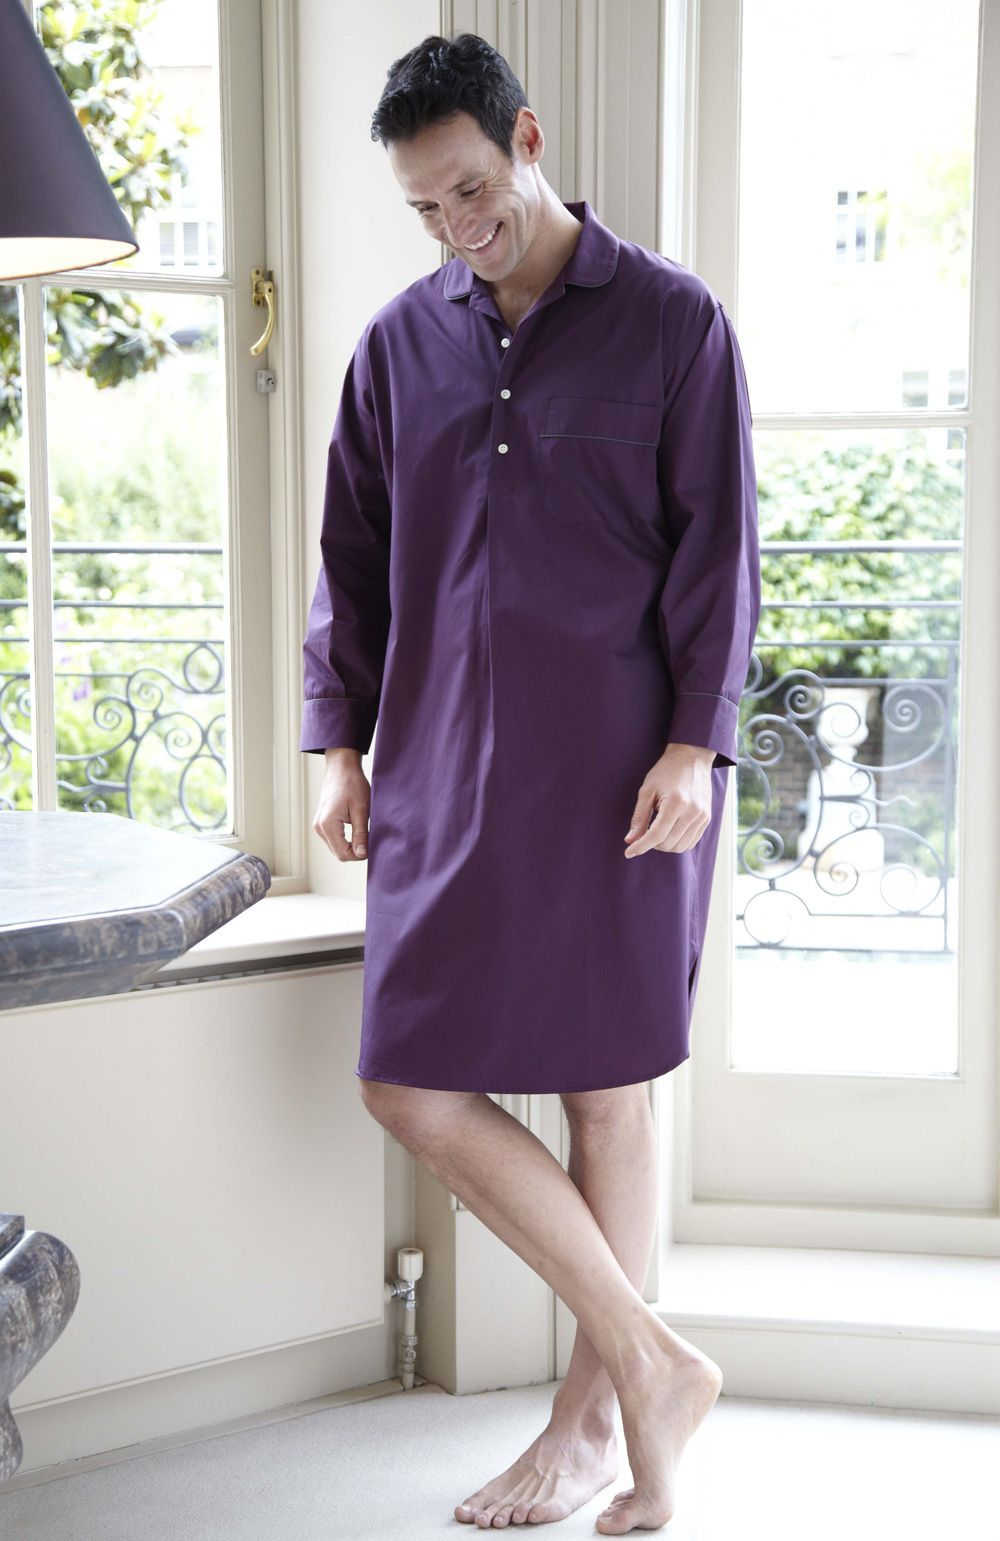 49688f84f0 Essential Men s Nightshirt Part of our Essentials range of classic  nightwear  Made from cool cotton poplin